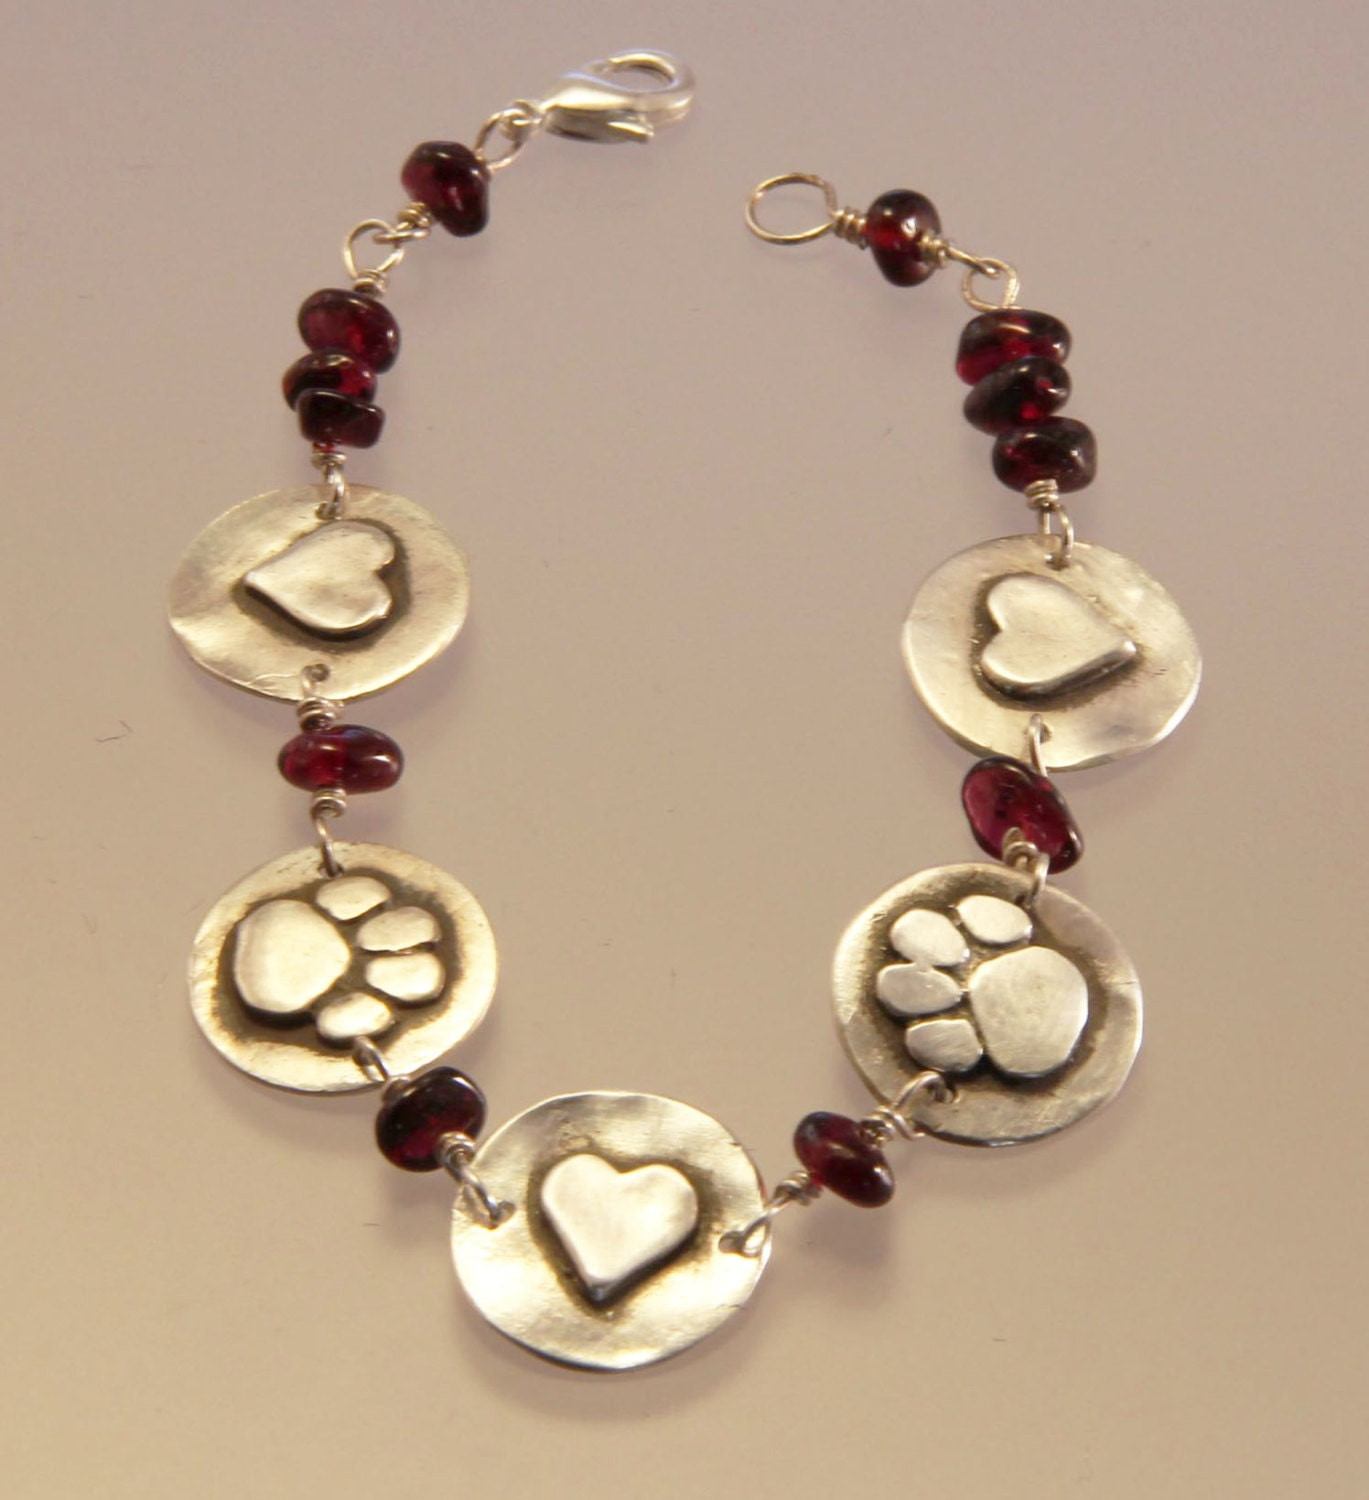 Bracelet With Hearts: Dog Paws And Hearts With Garnets Bracelet Dog Paw Bracelet